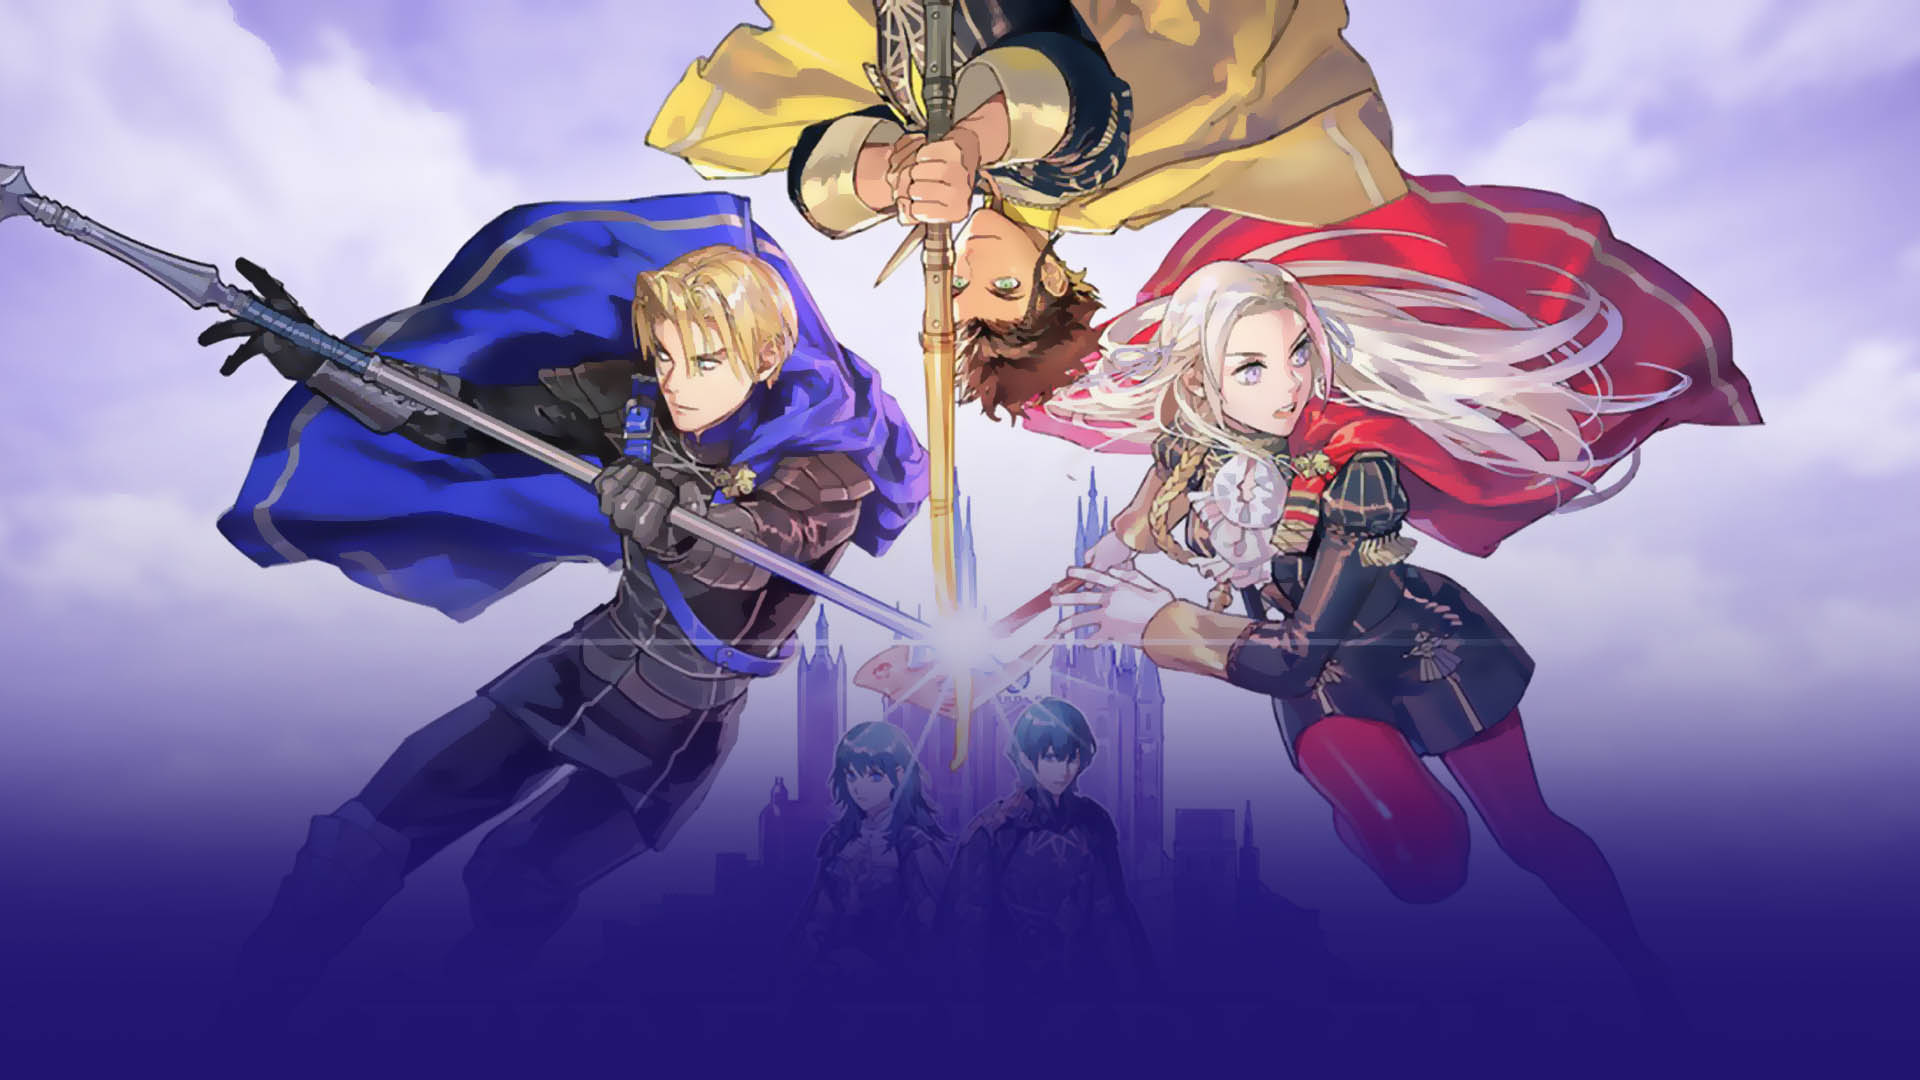 How long is Fire Emblem: Three Houses campaign?